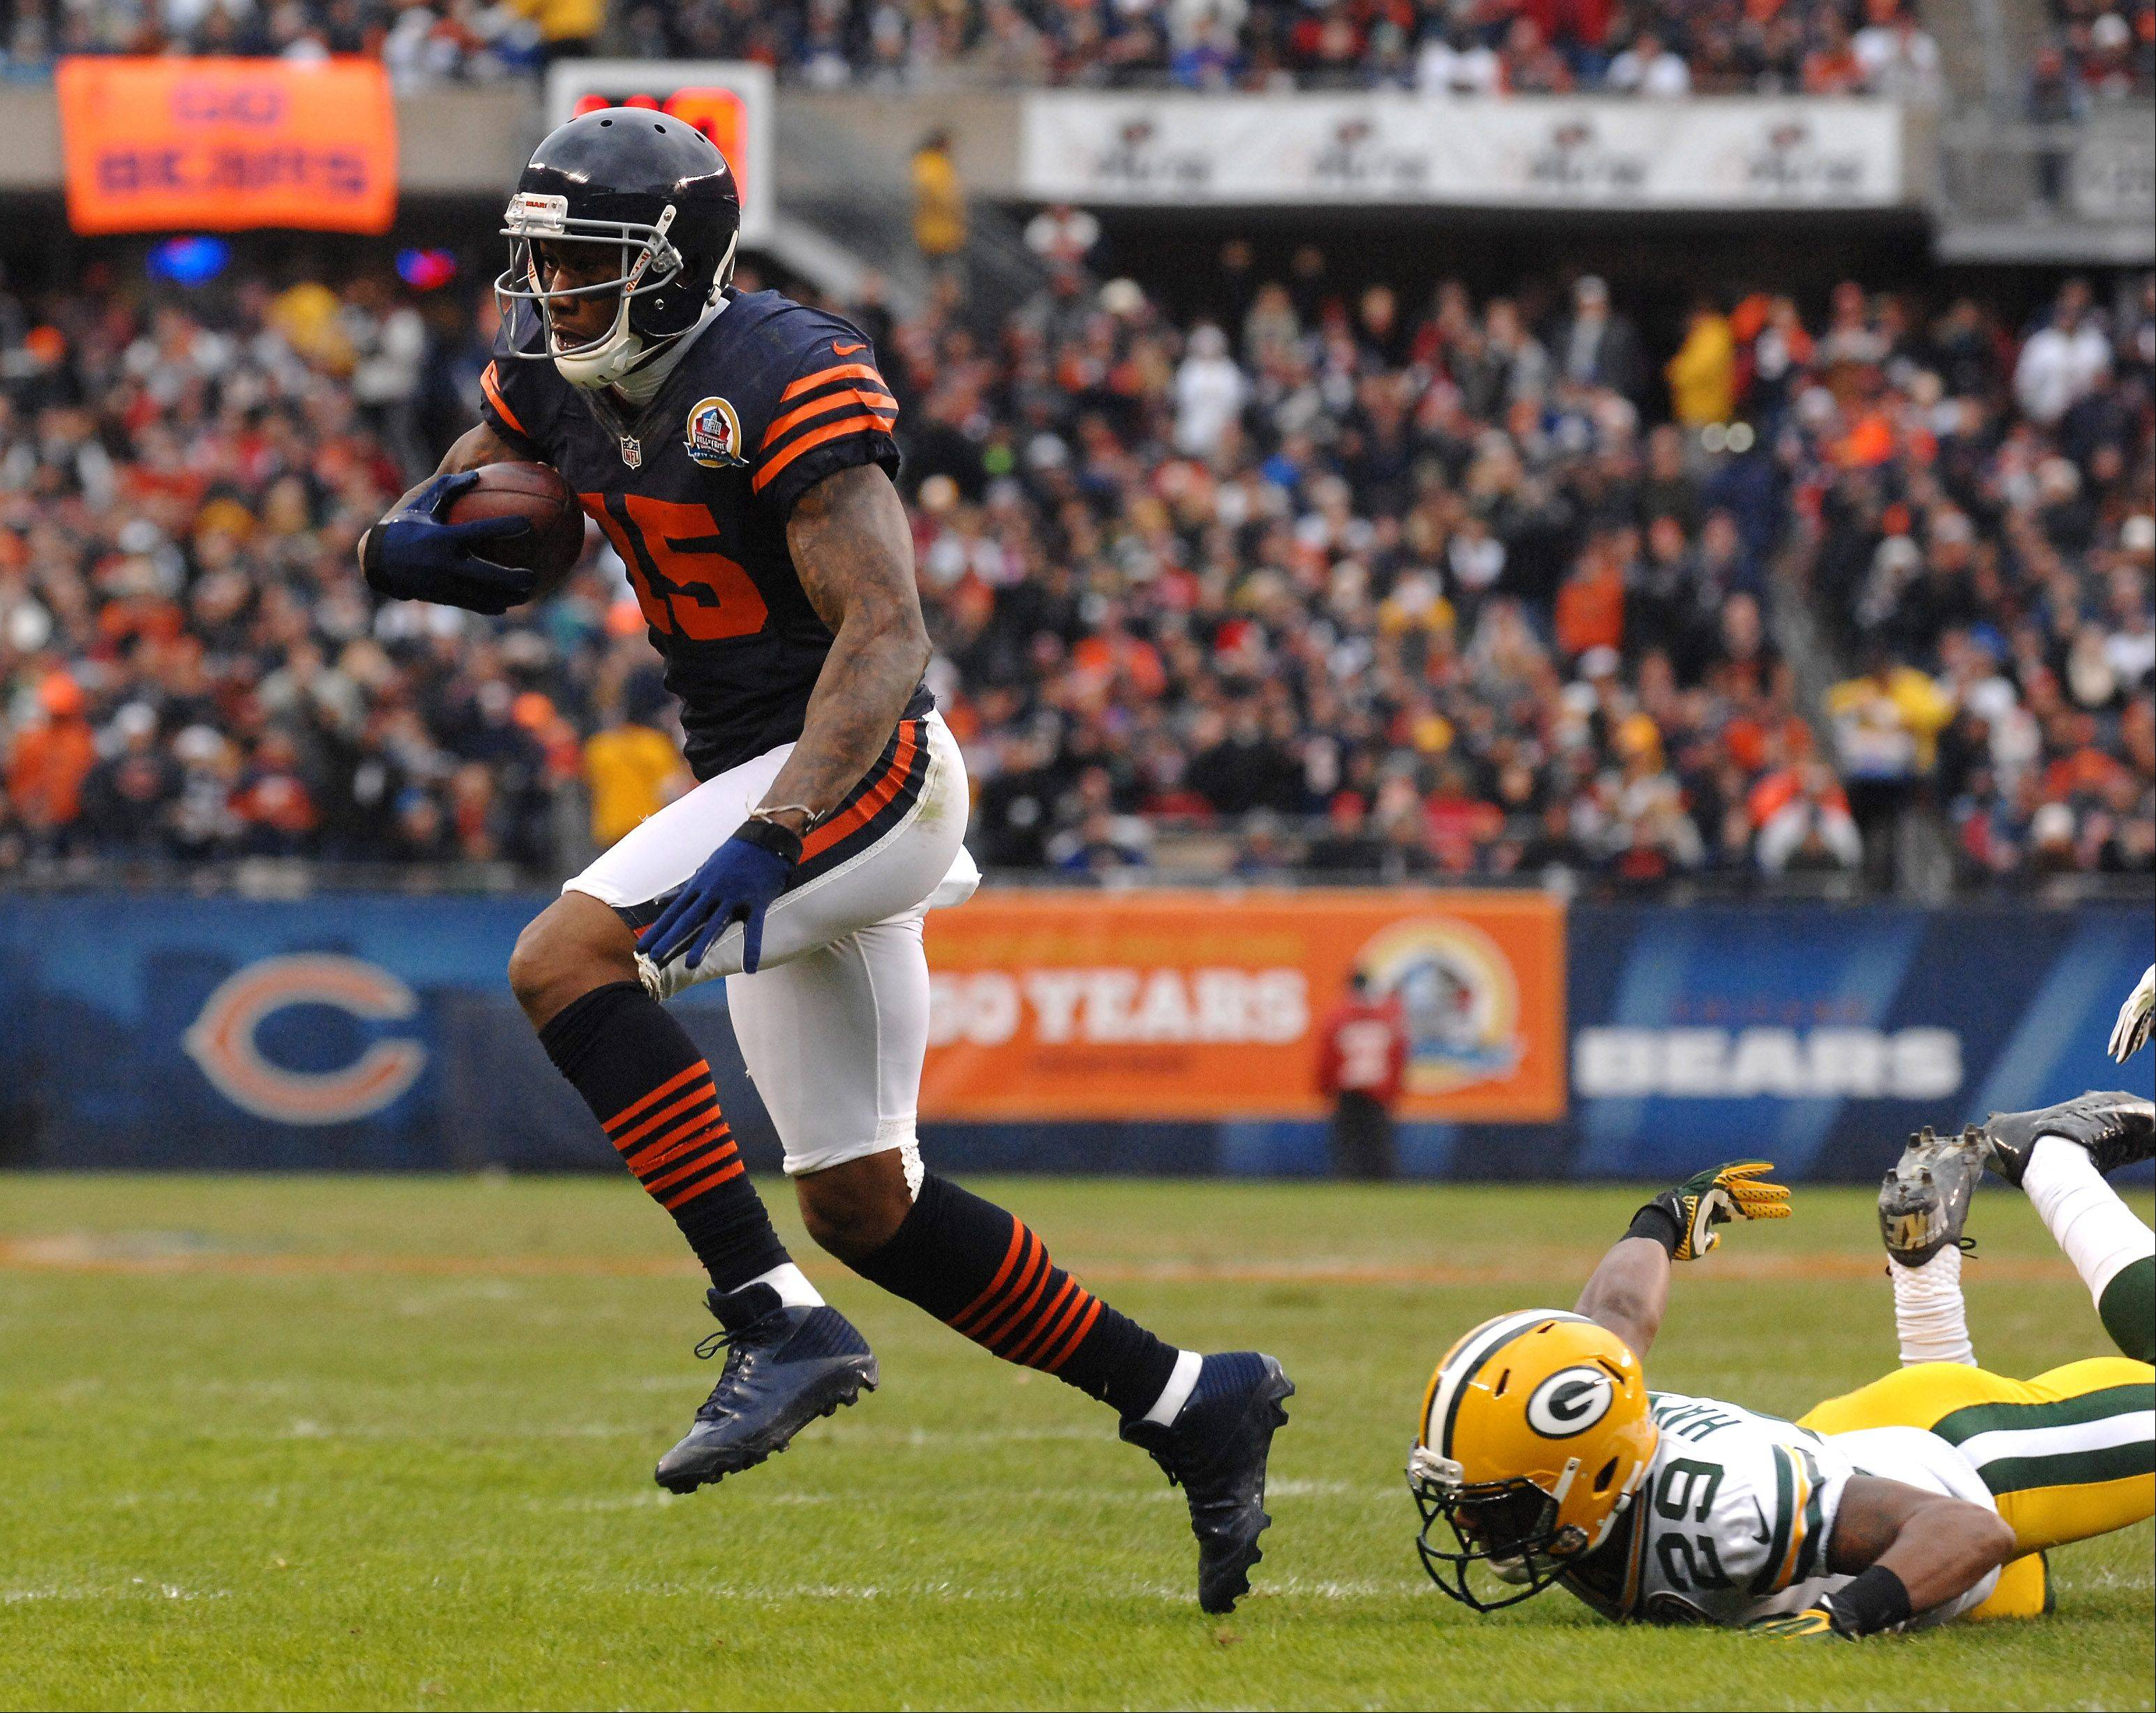 Chicago Bears wide receiver Brandon Marshall (15) gets away from Green Bay Packers cornerback Casey Hayward (29) to score a second-quarter touchdown during Sunday's game at Soldier Field in Chicago.